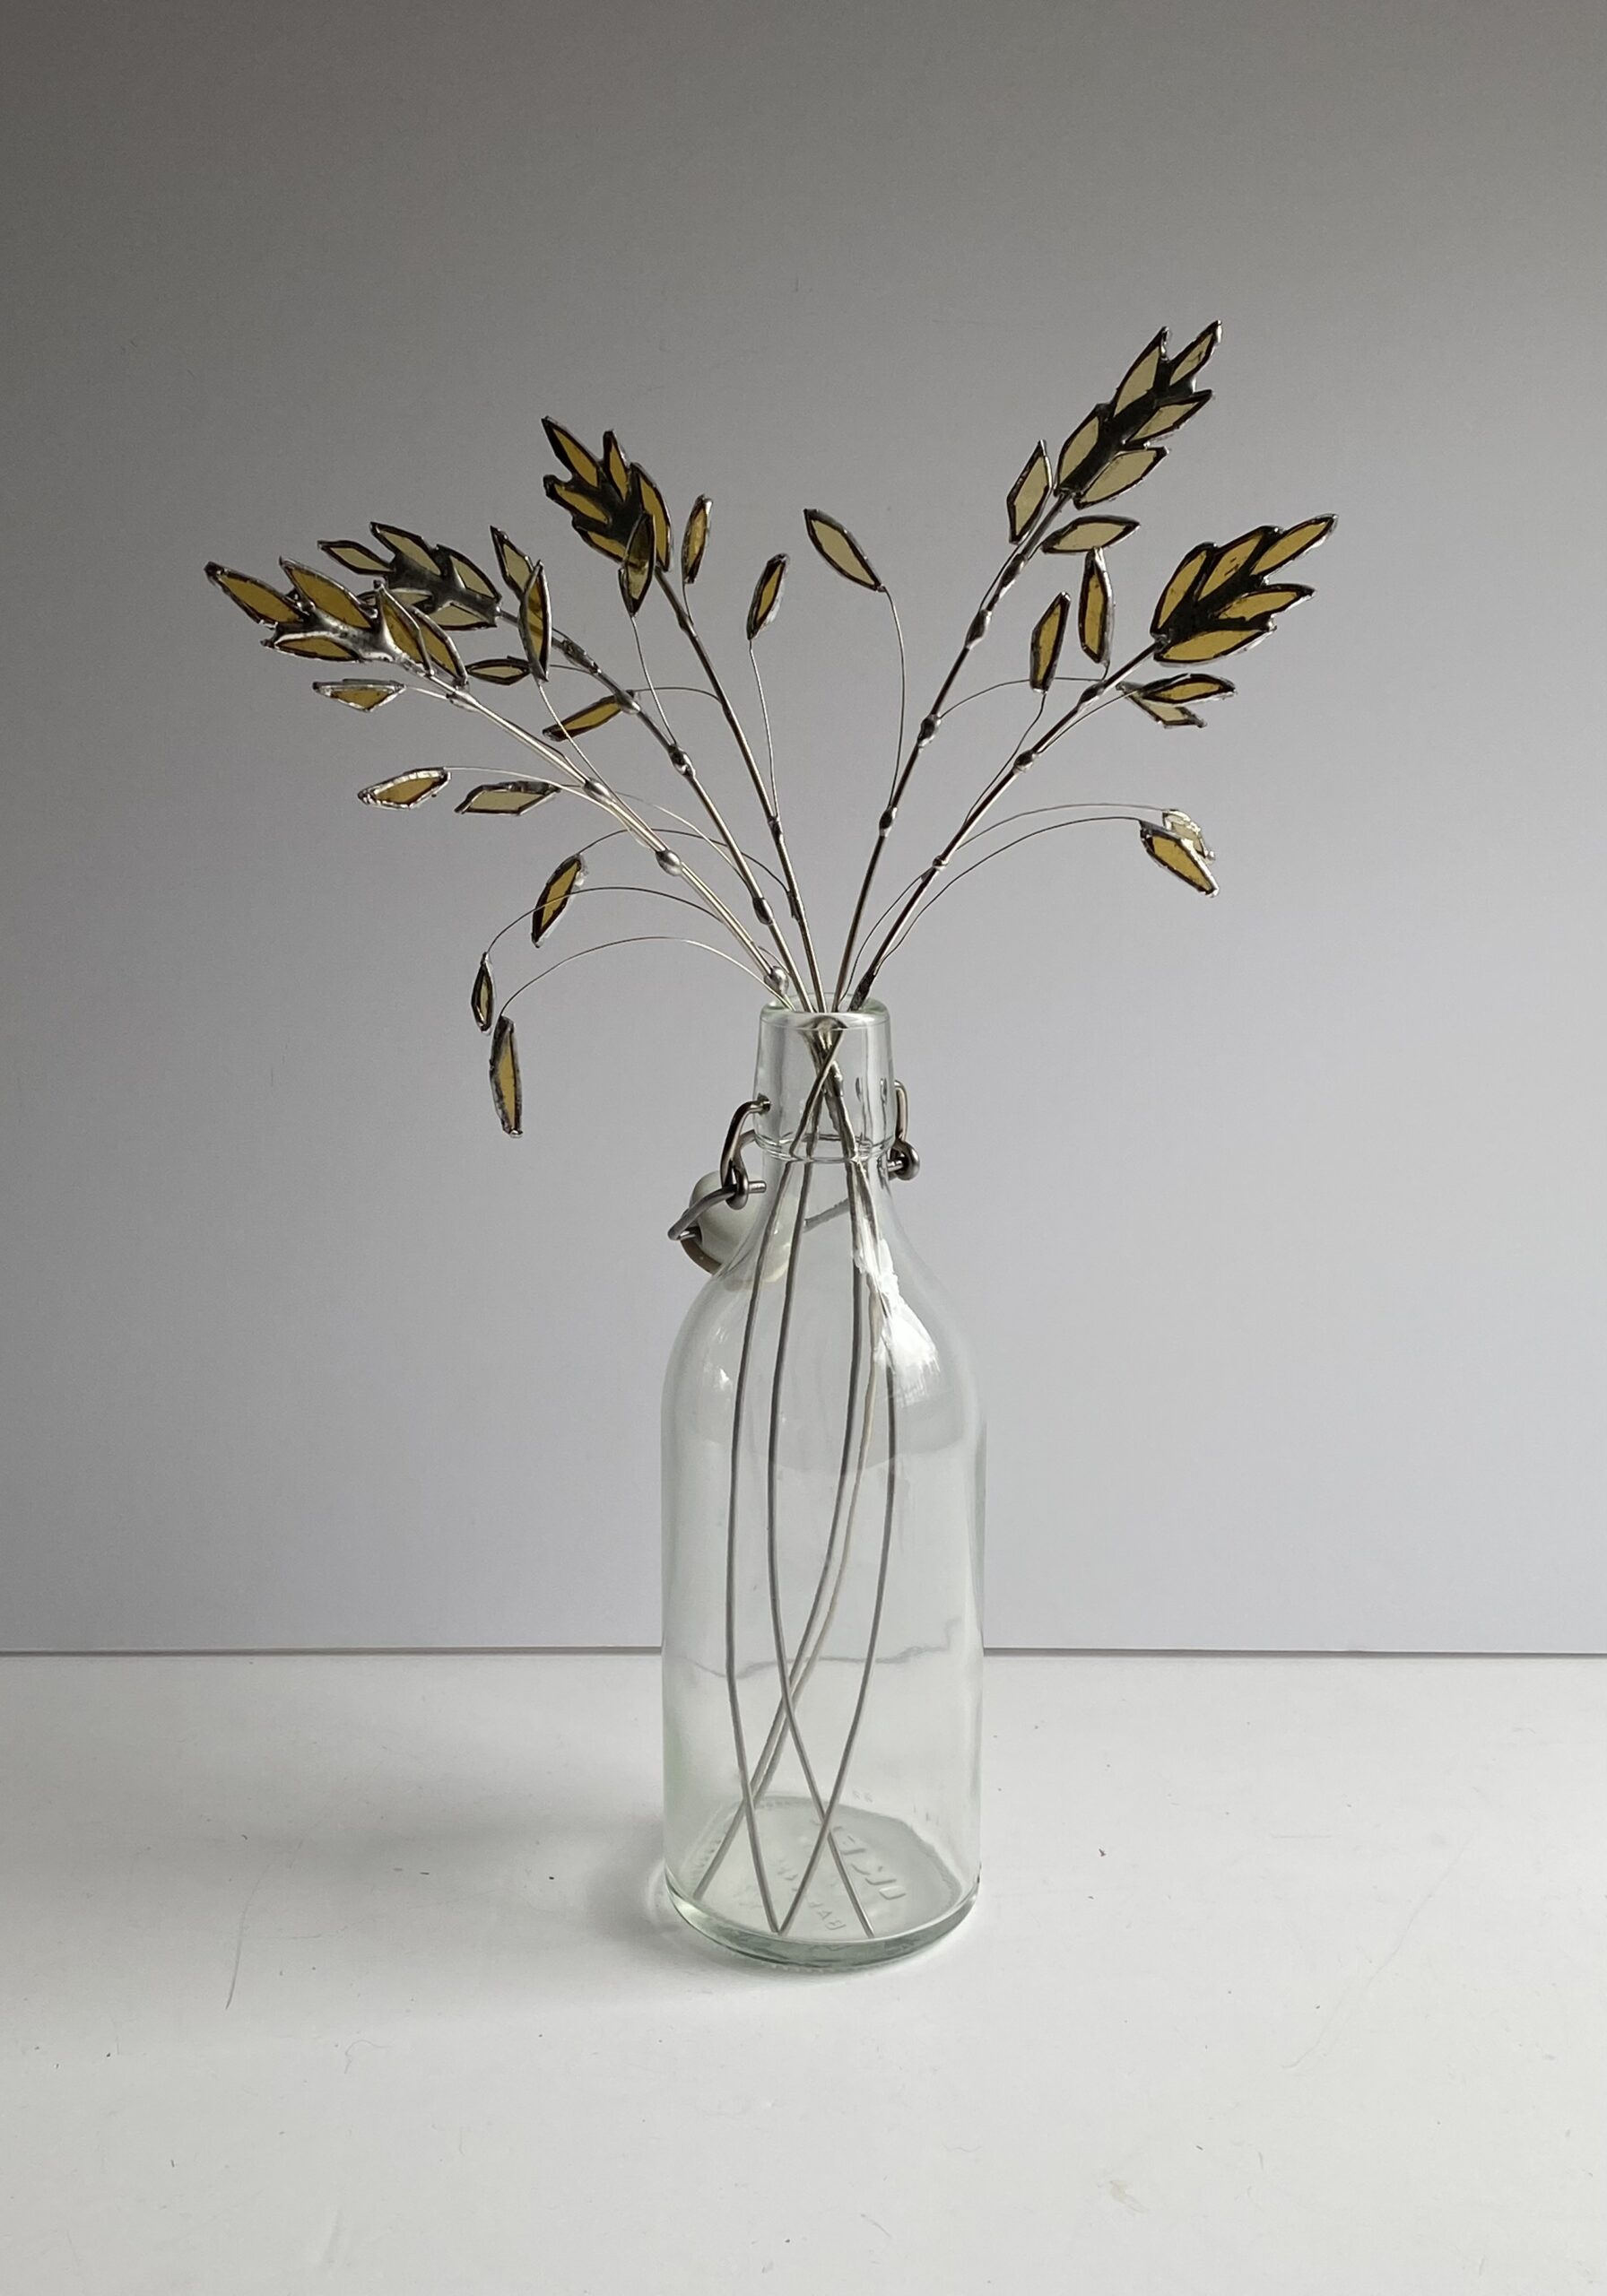 Samantha Yates. Stained glass Cocksfoot Grasses